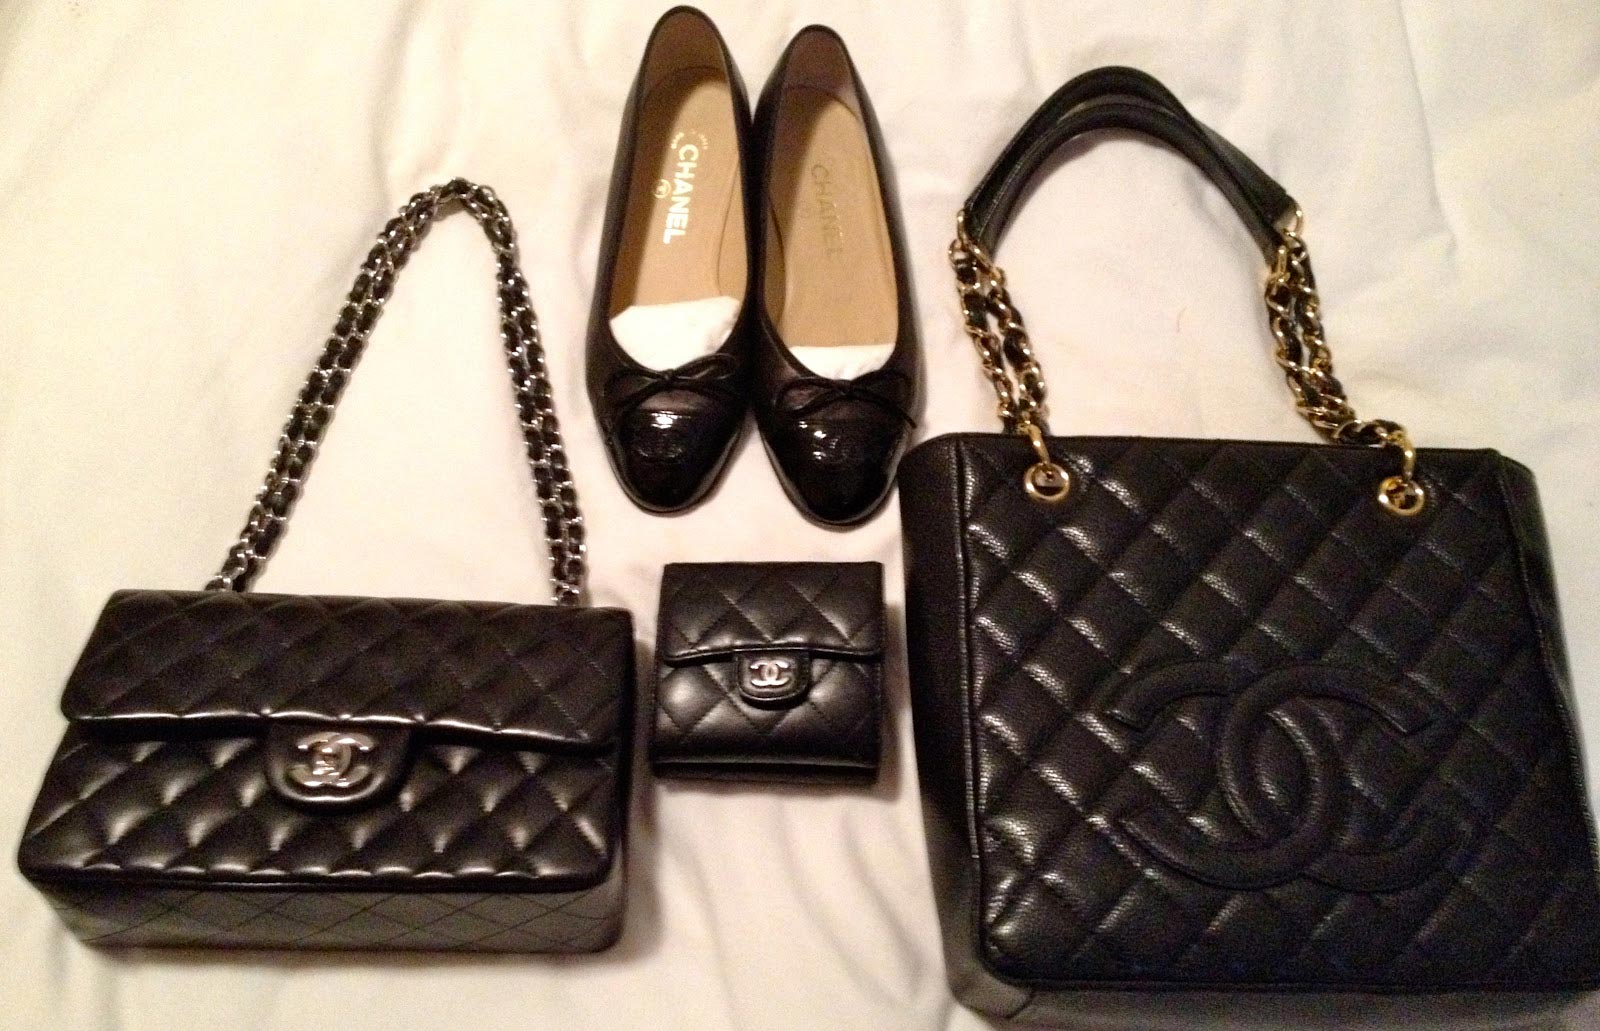 Uk Duty Free Chanel Handbags